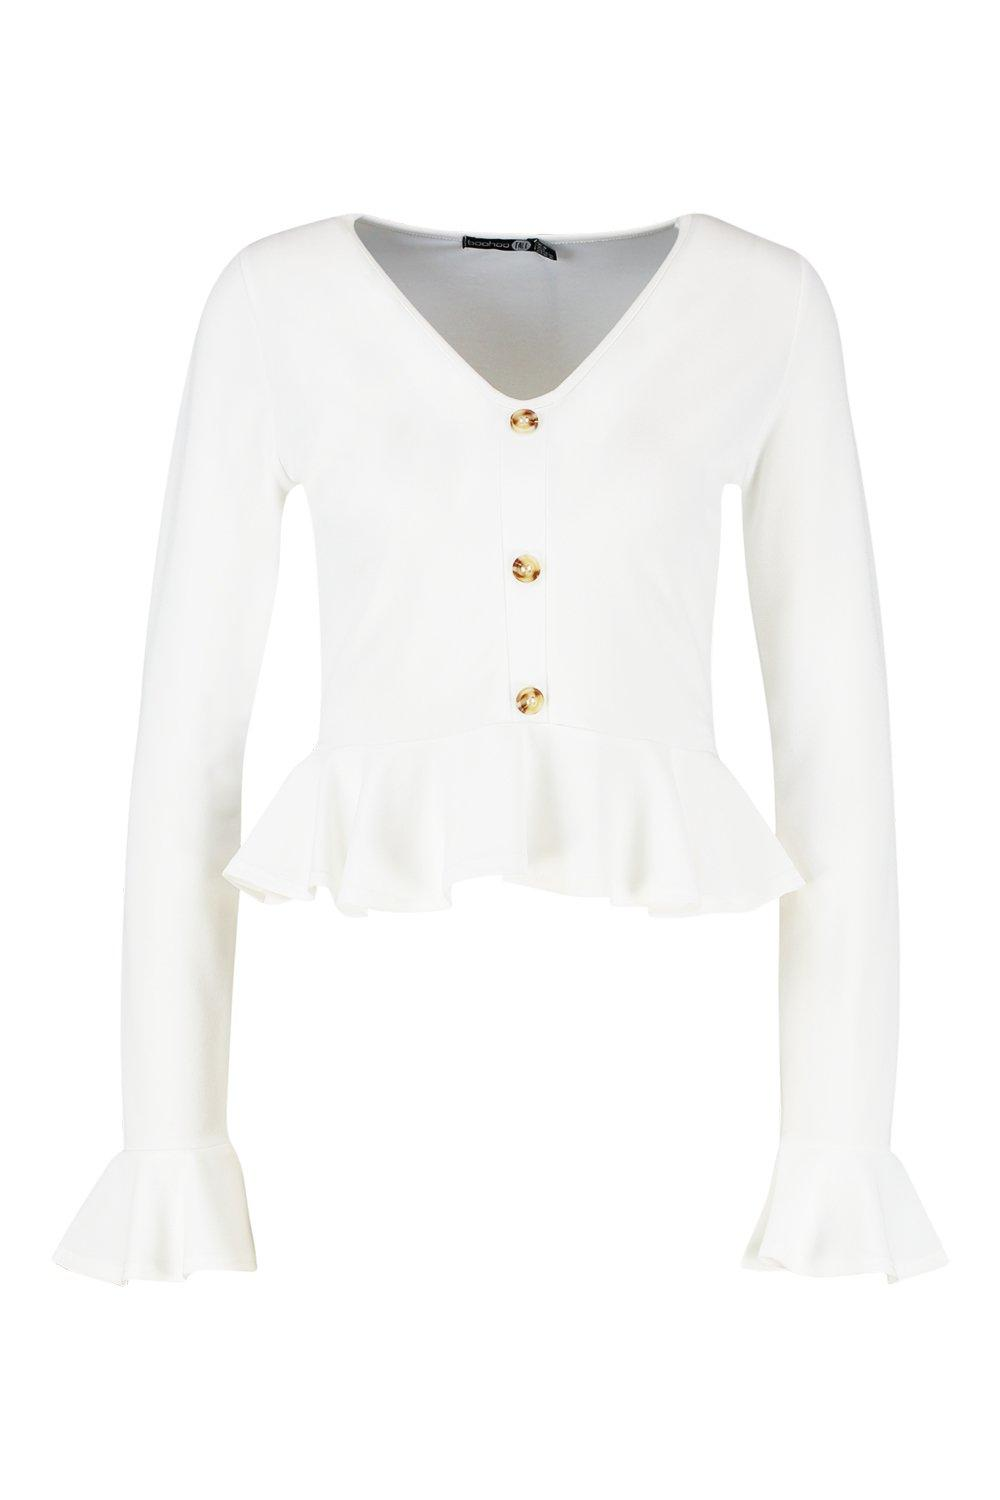 white Button Tall Horn Peplum Top Hem wHwqXa7B